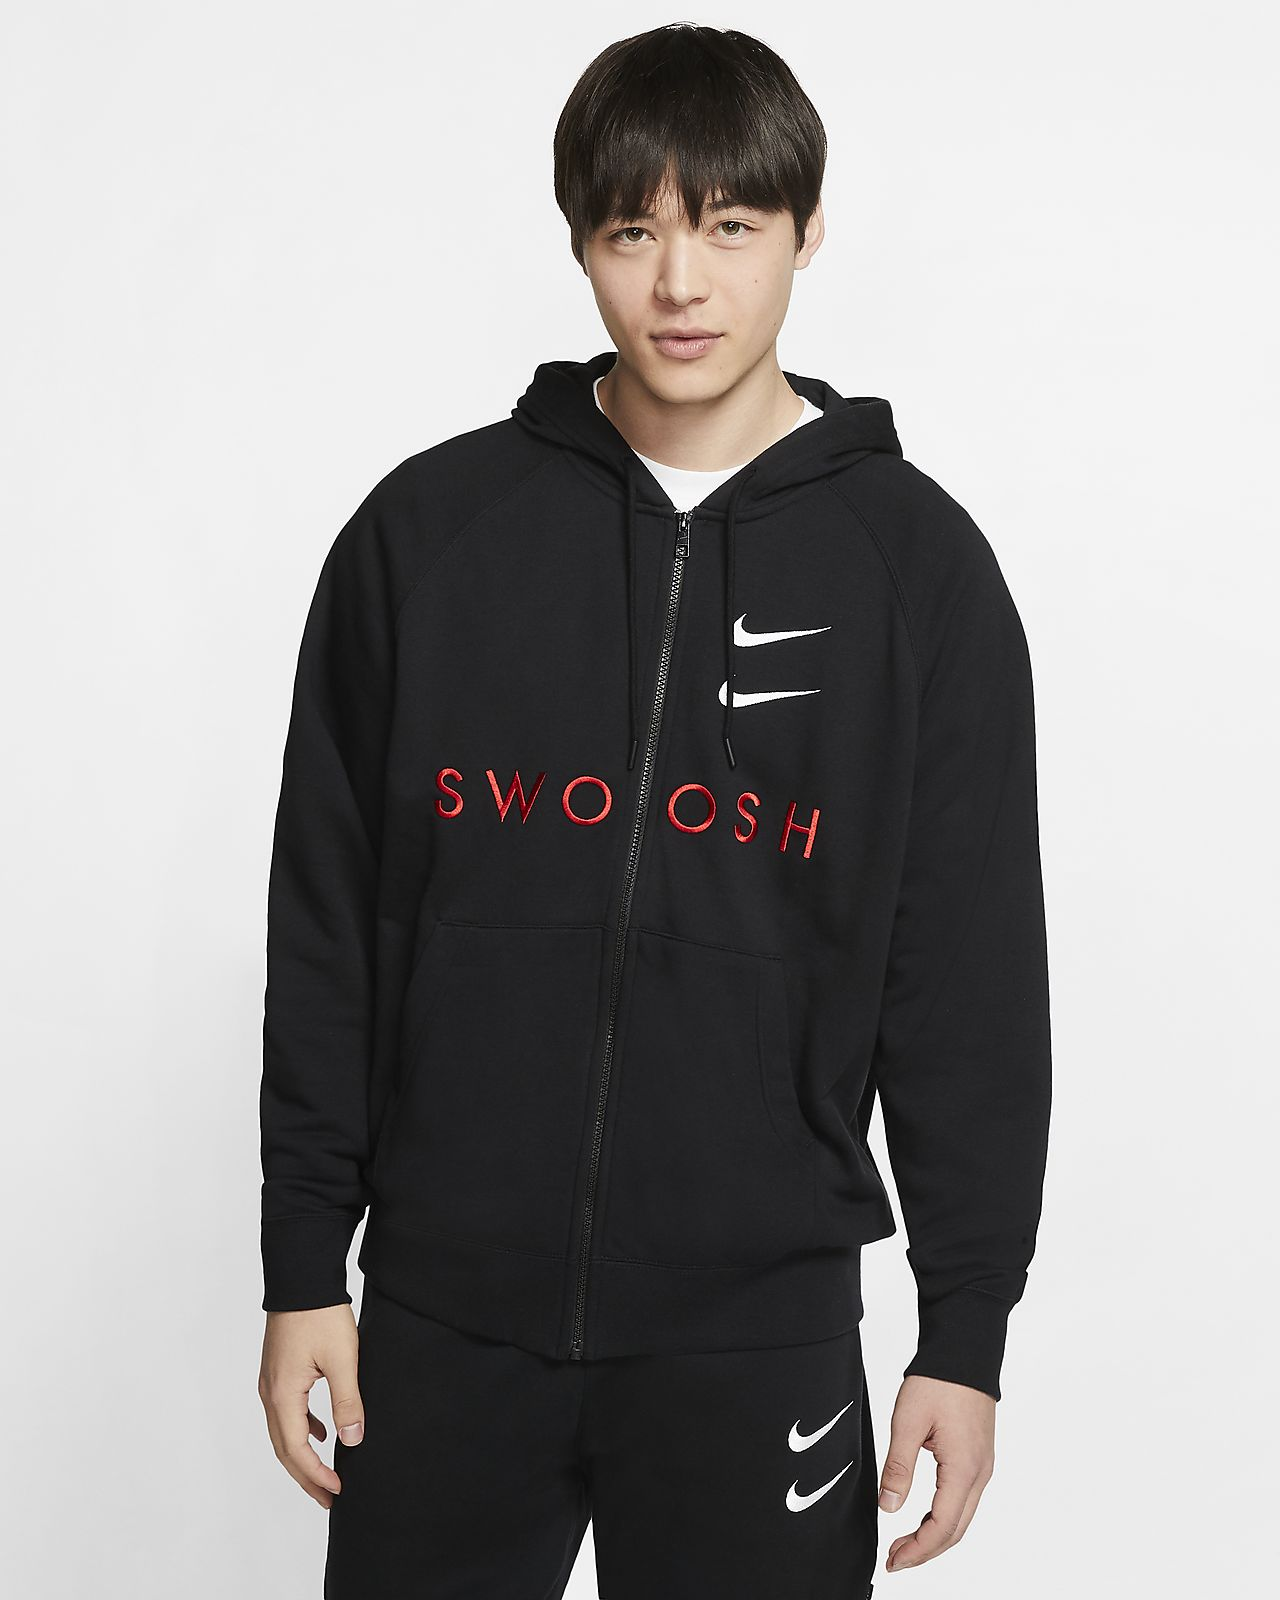 Nike Sportswear Swoosh Men's Full-Zip French Terry Hoodie